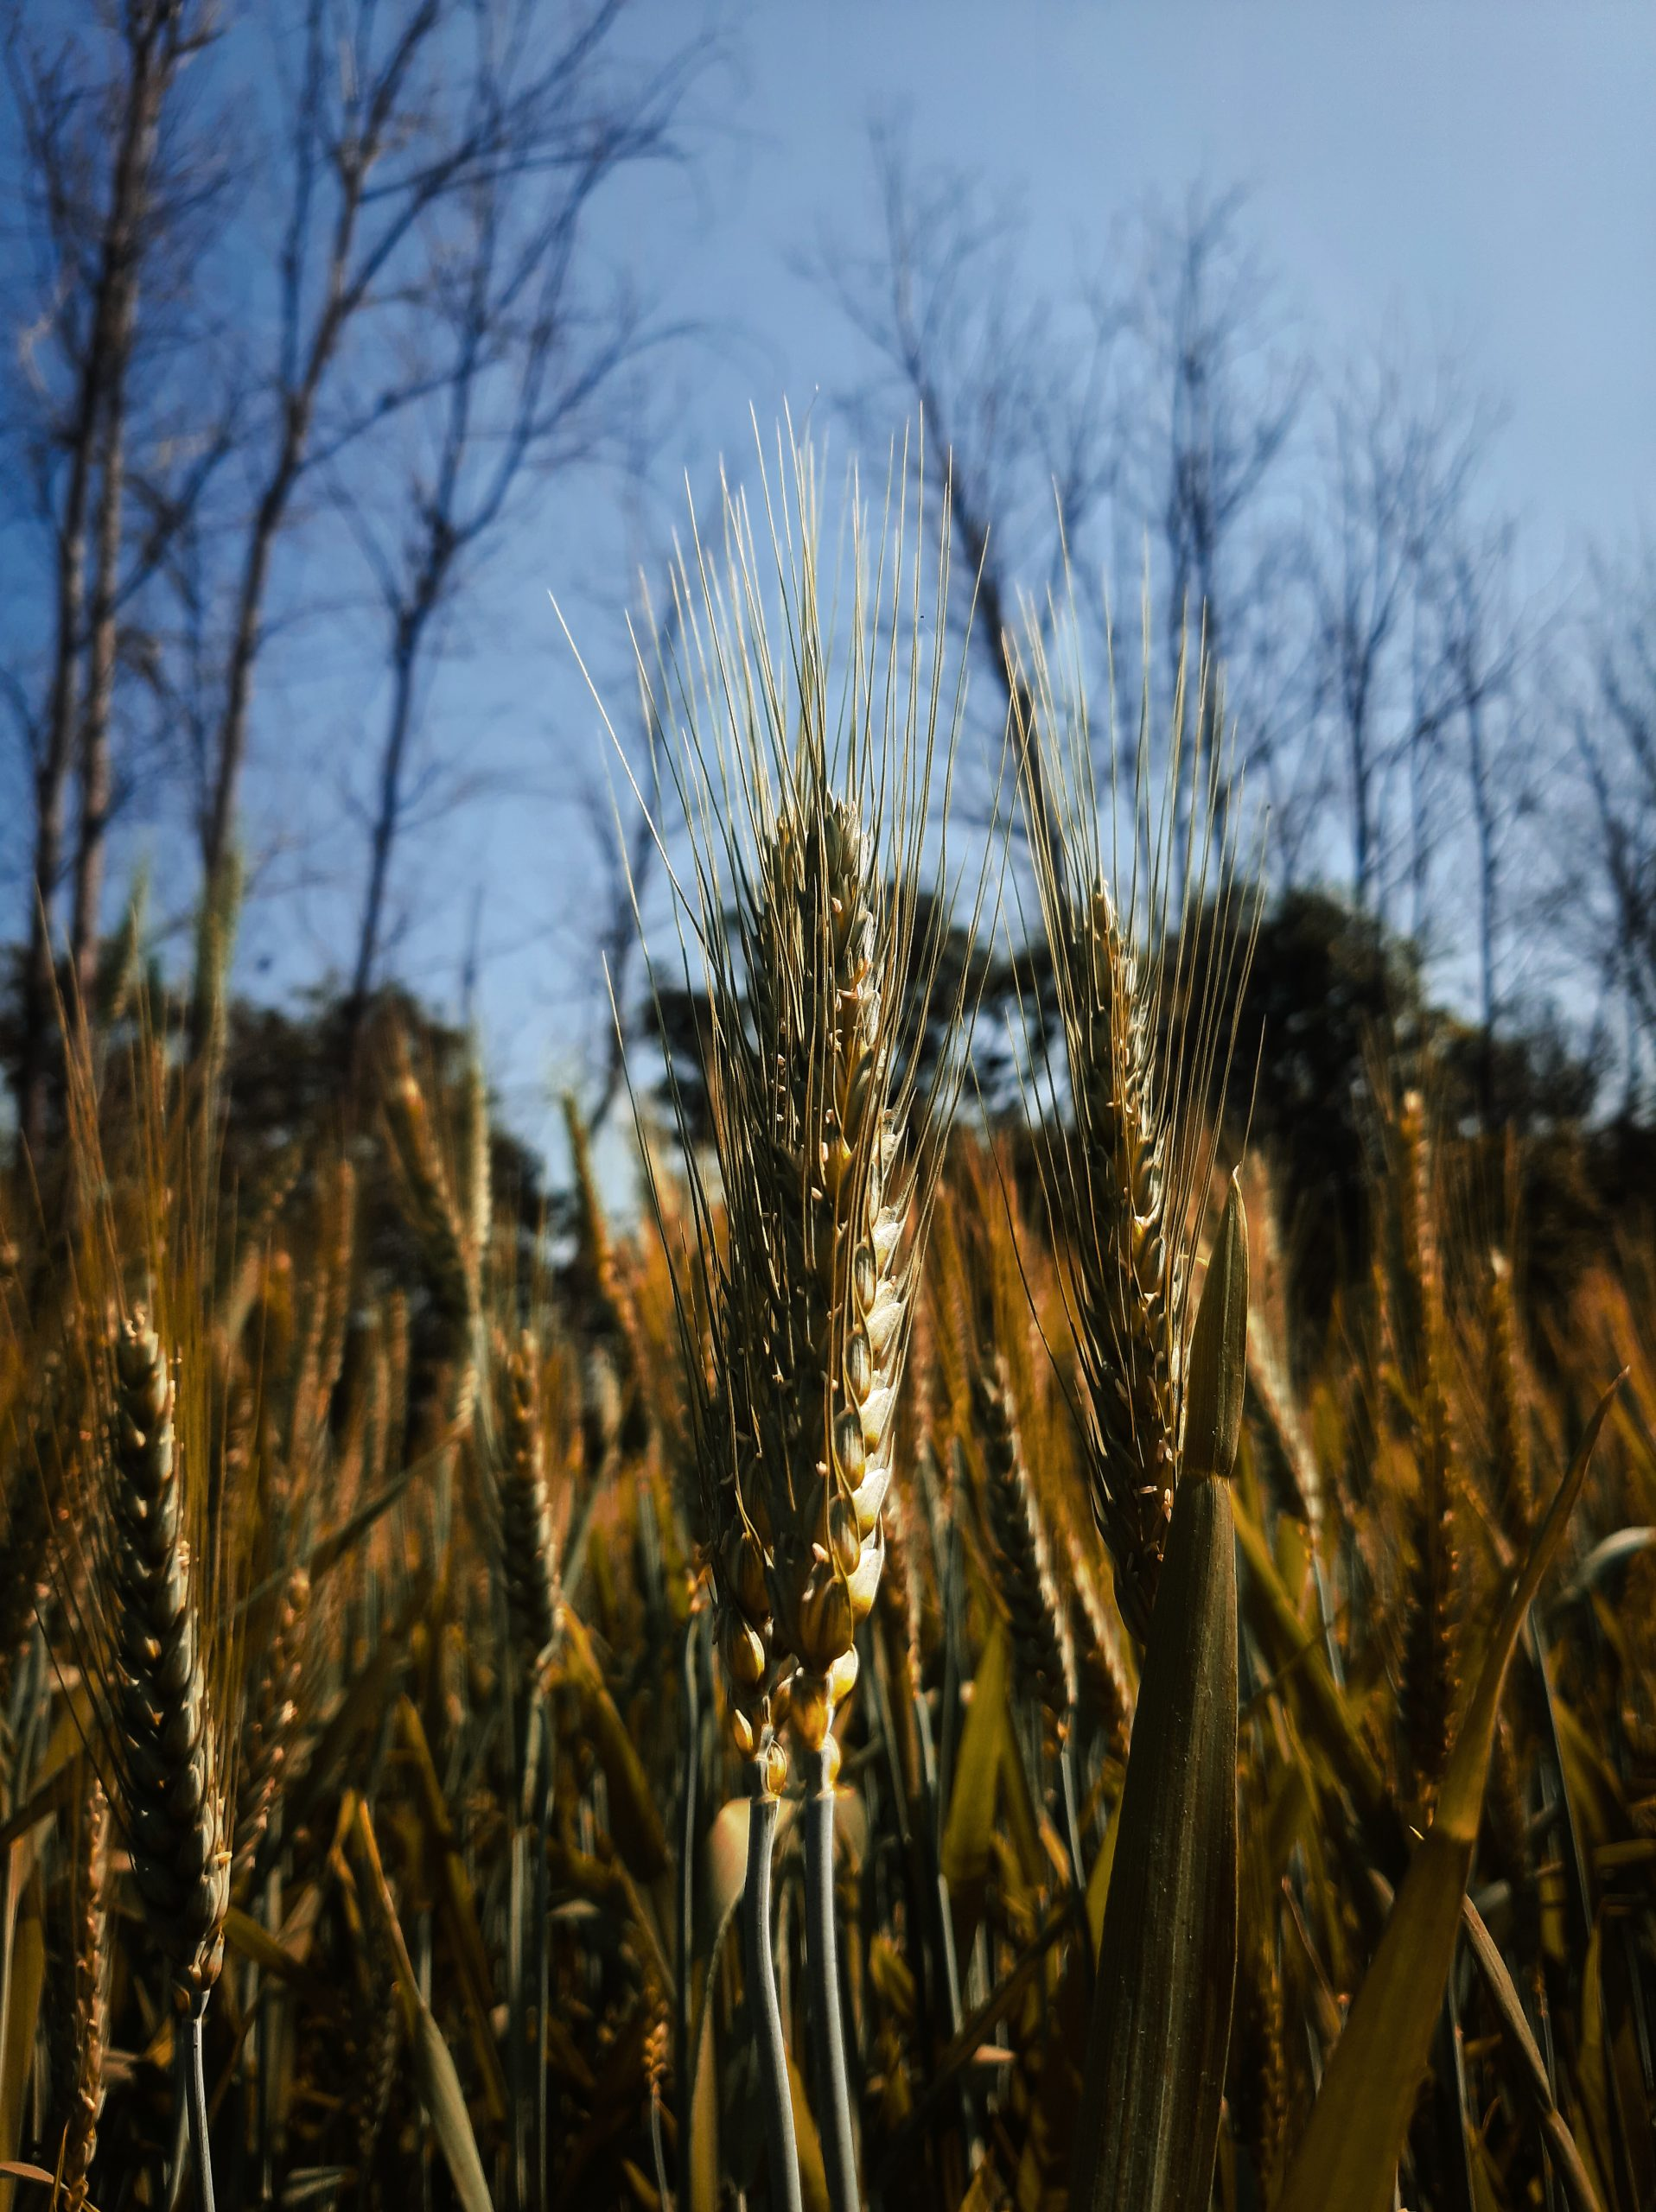 Wheat plants in a field